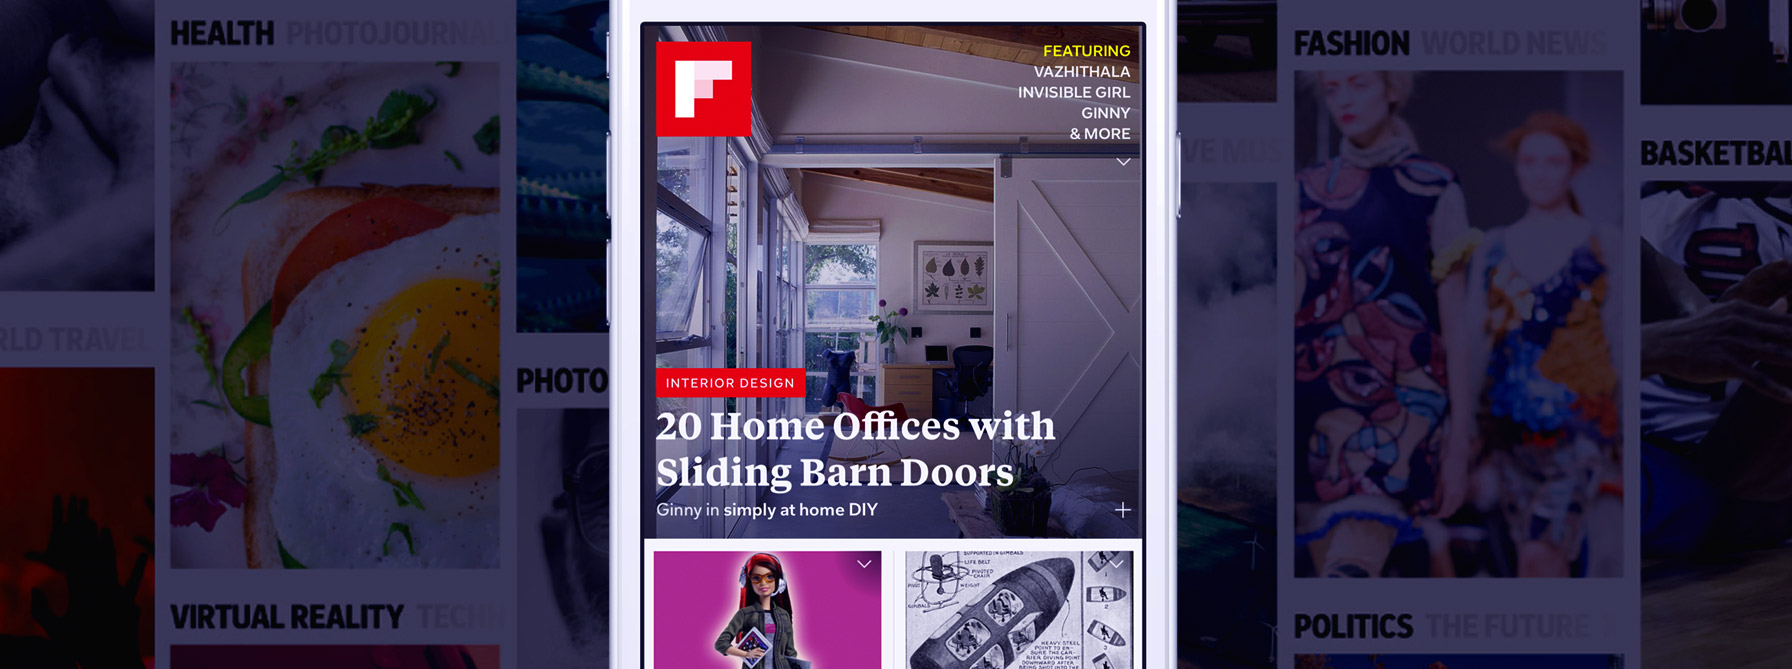 Flipboard 4.0: Welcome to the age of Smart Magazines header